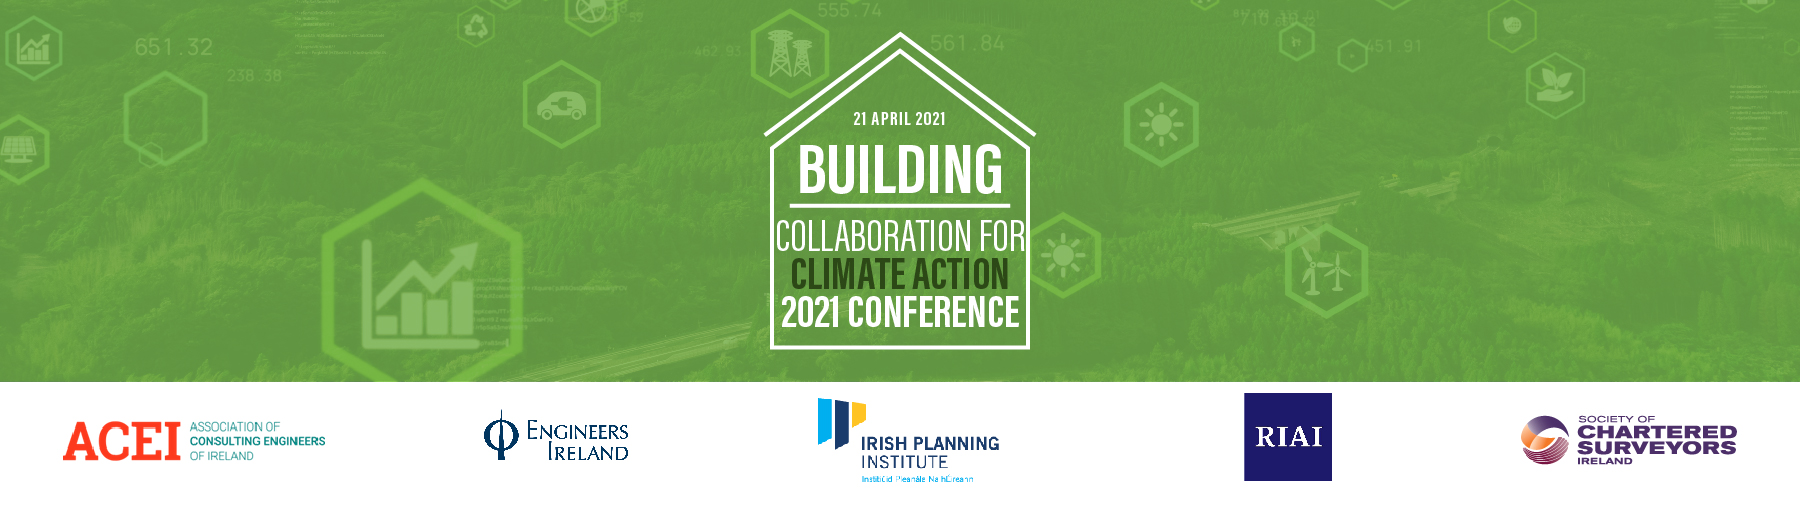 Building Collaboration for Climate Action  2021 Joint Conference